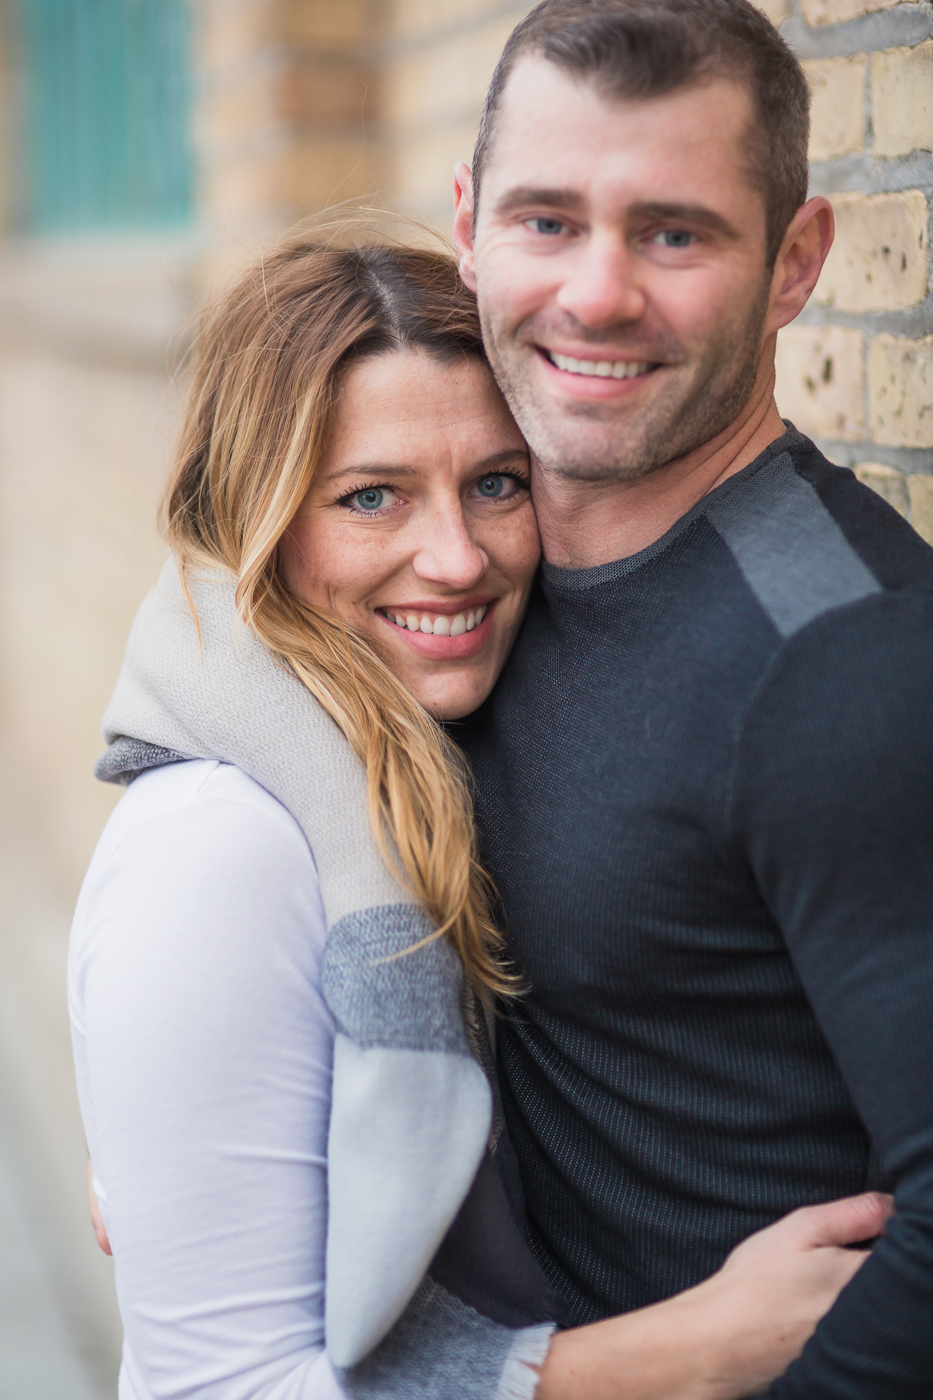 StaciDesign_Mill_City_MPLS_Engagement-6216.jpg